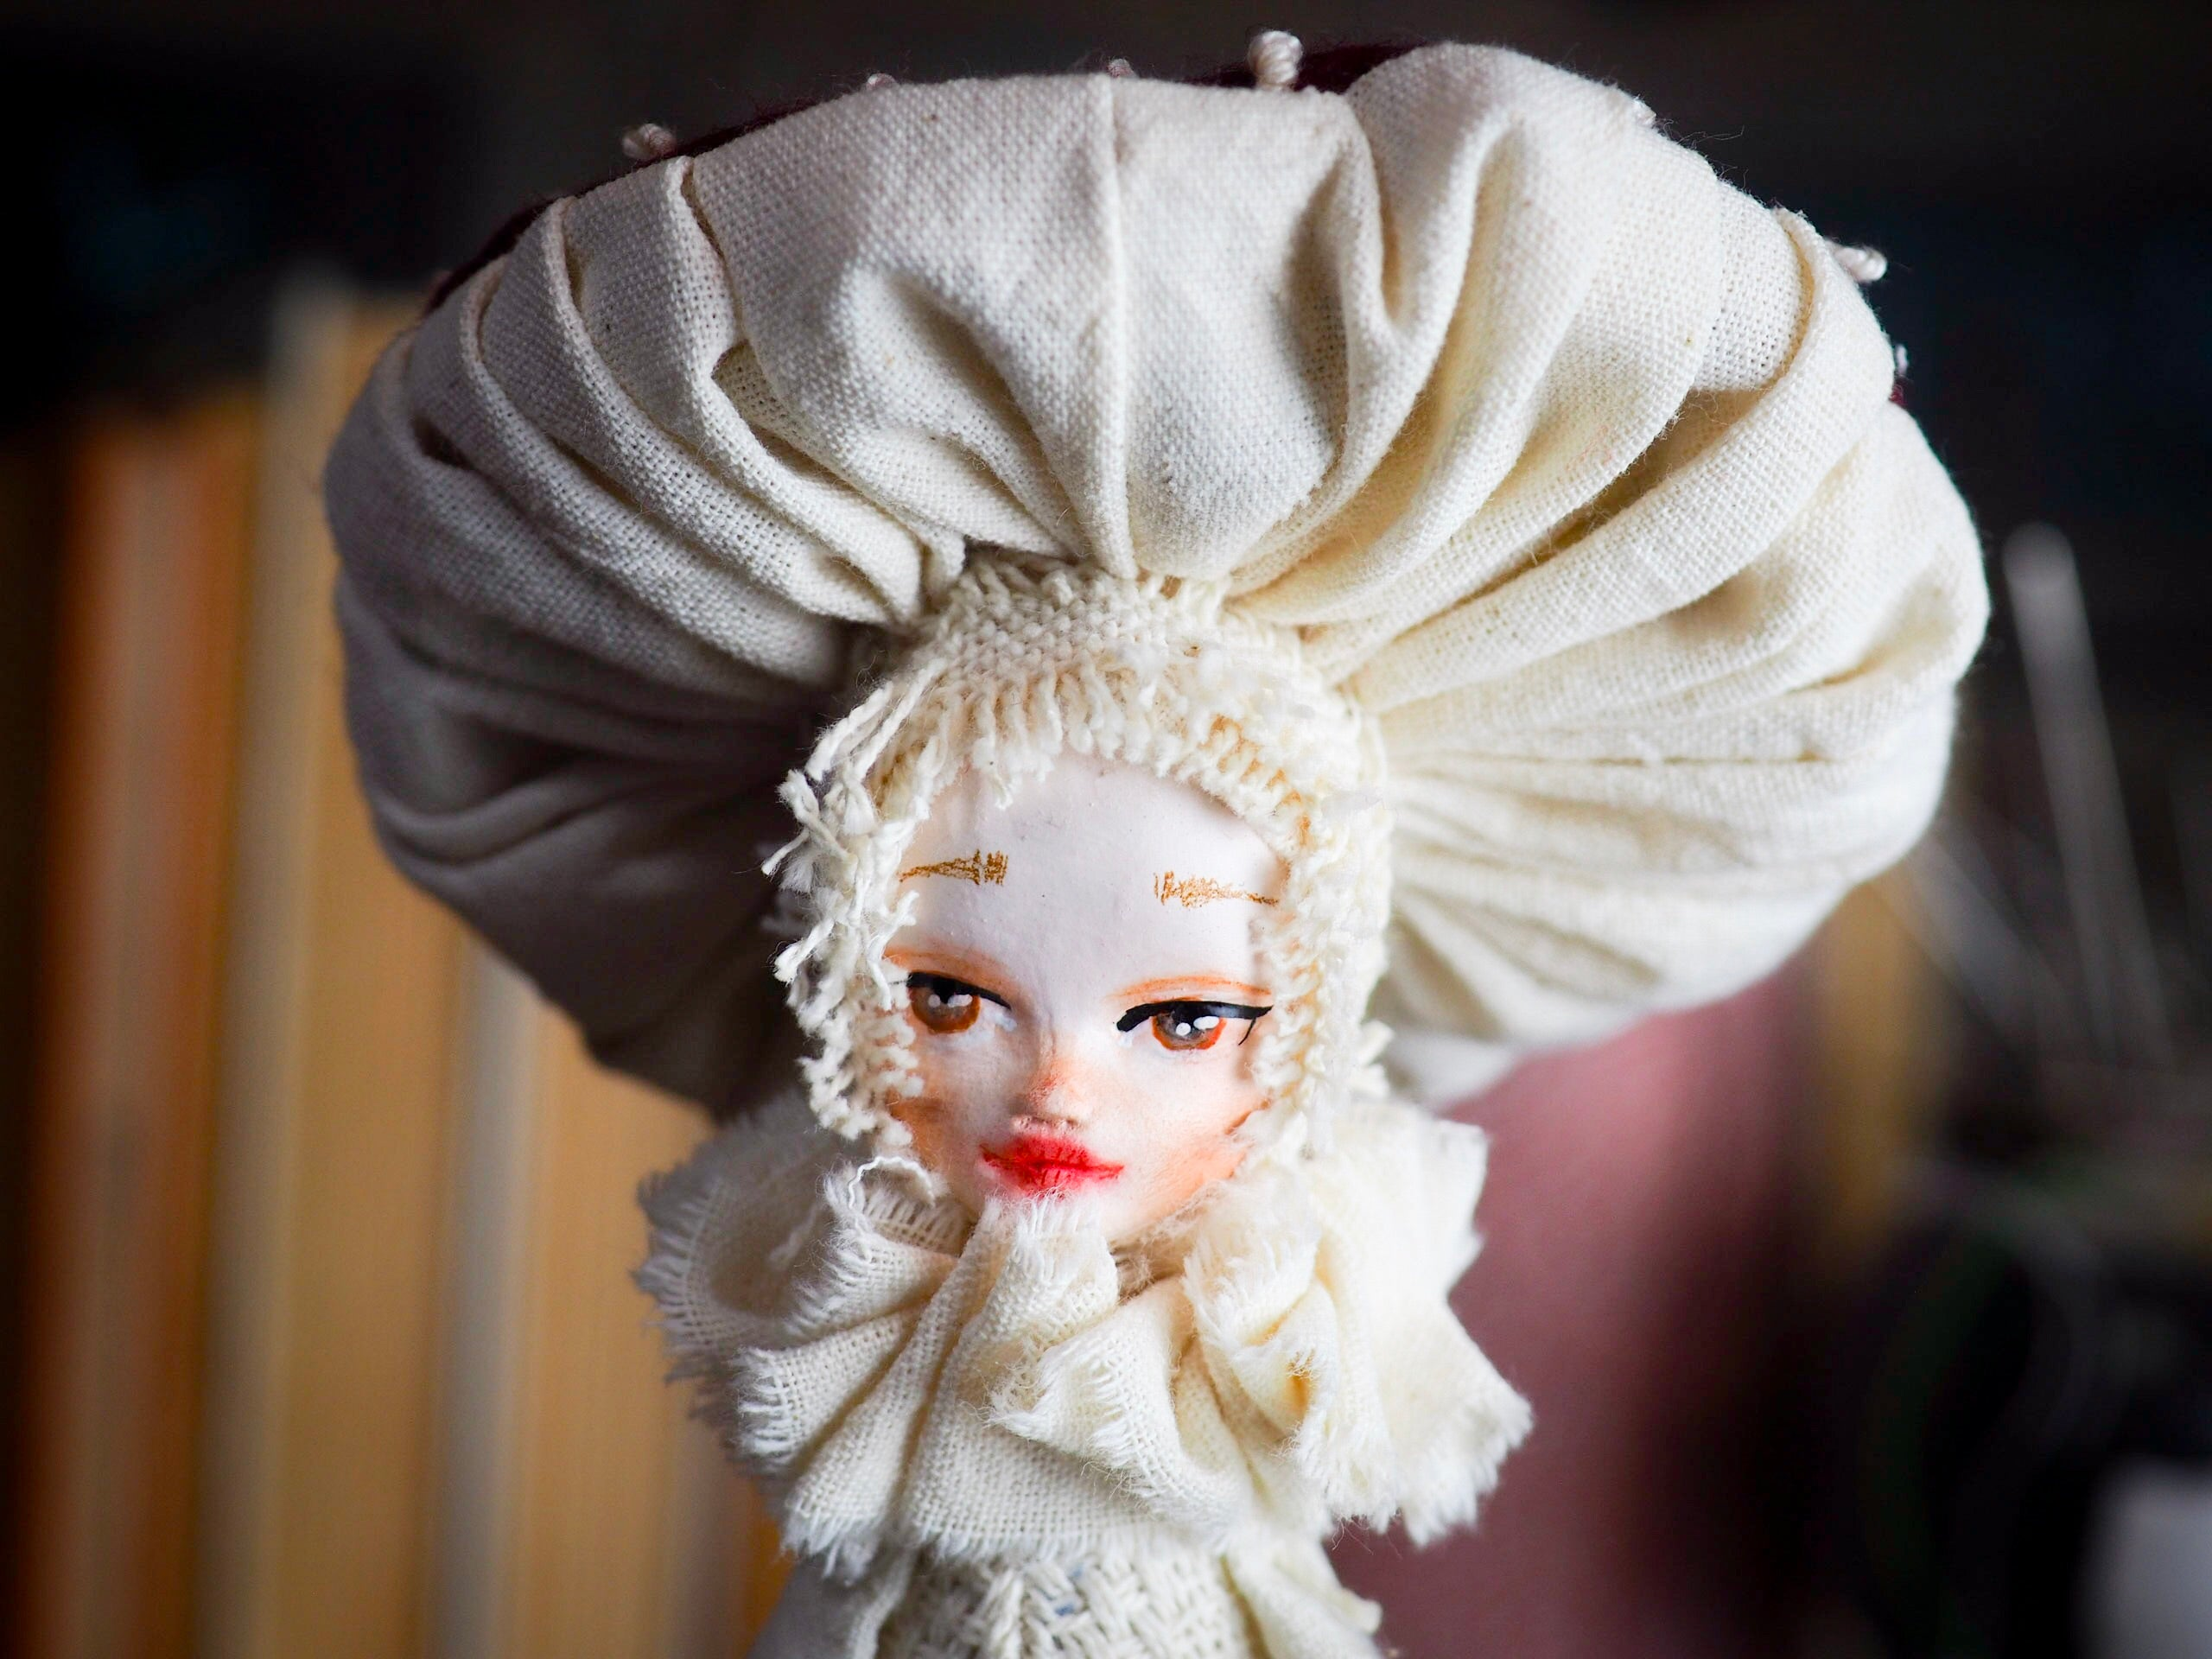 MUSHROOM SPECIMEN N. 6 - Original woodlands handmade art doll by Danita Art, Art Doll by Danita Art